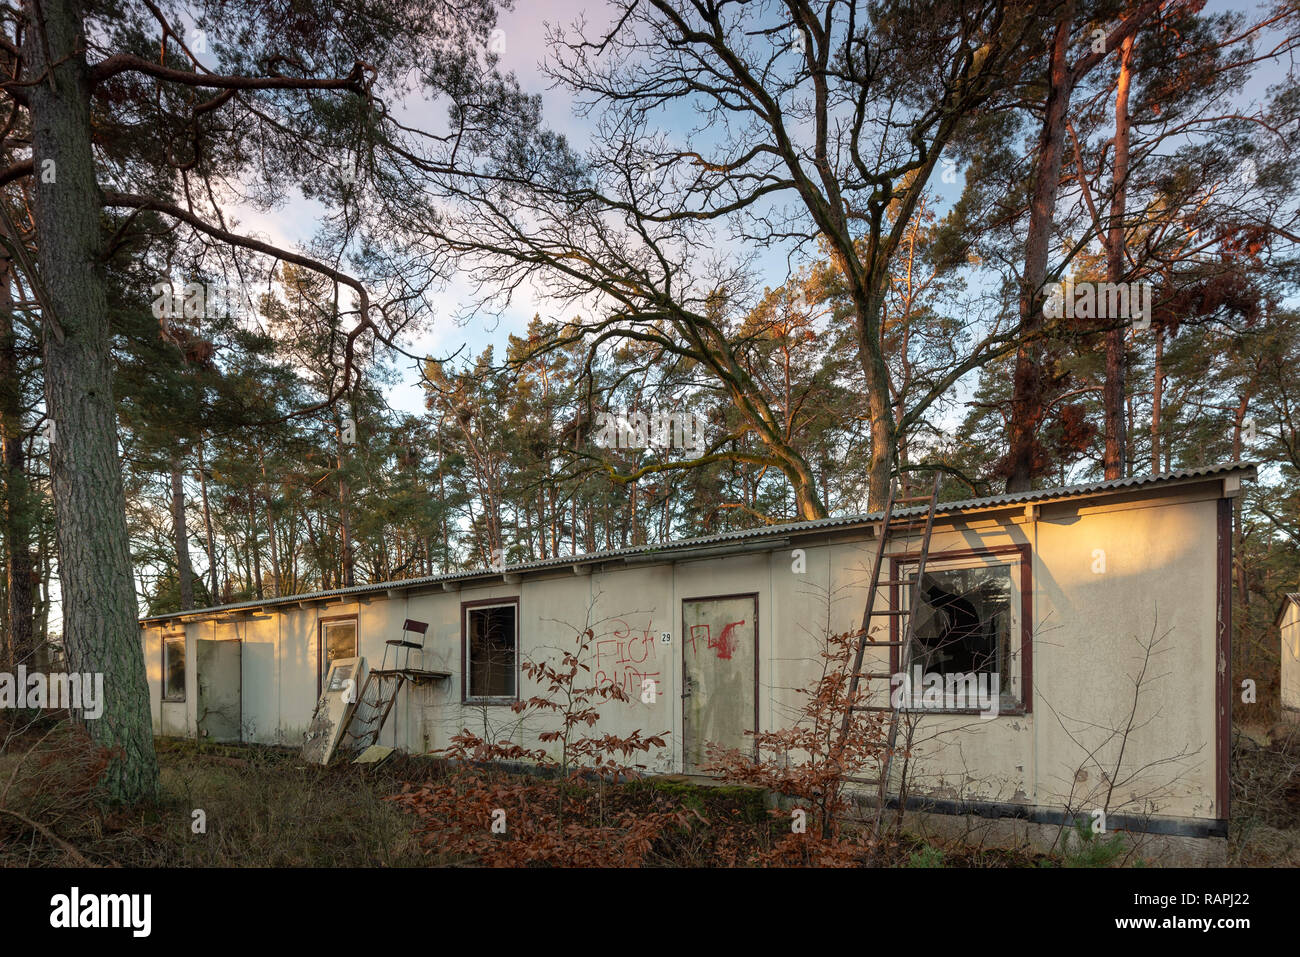 Prerow, Germany - December 30, 2018: View of the old barracks of the former central training centre (ZAZ) of the Gesellschaft für Sport und Technik (G - Stock Image